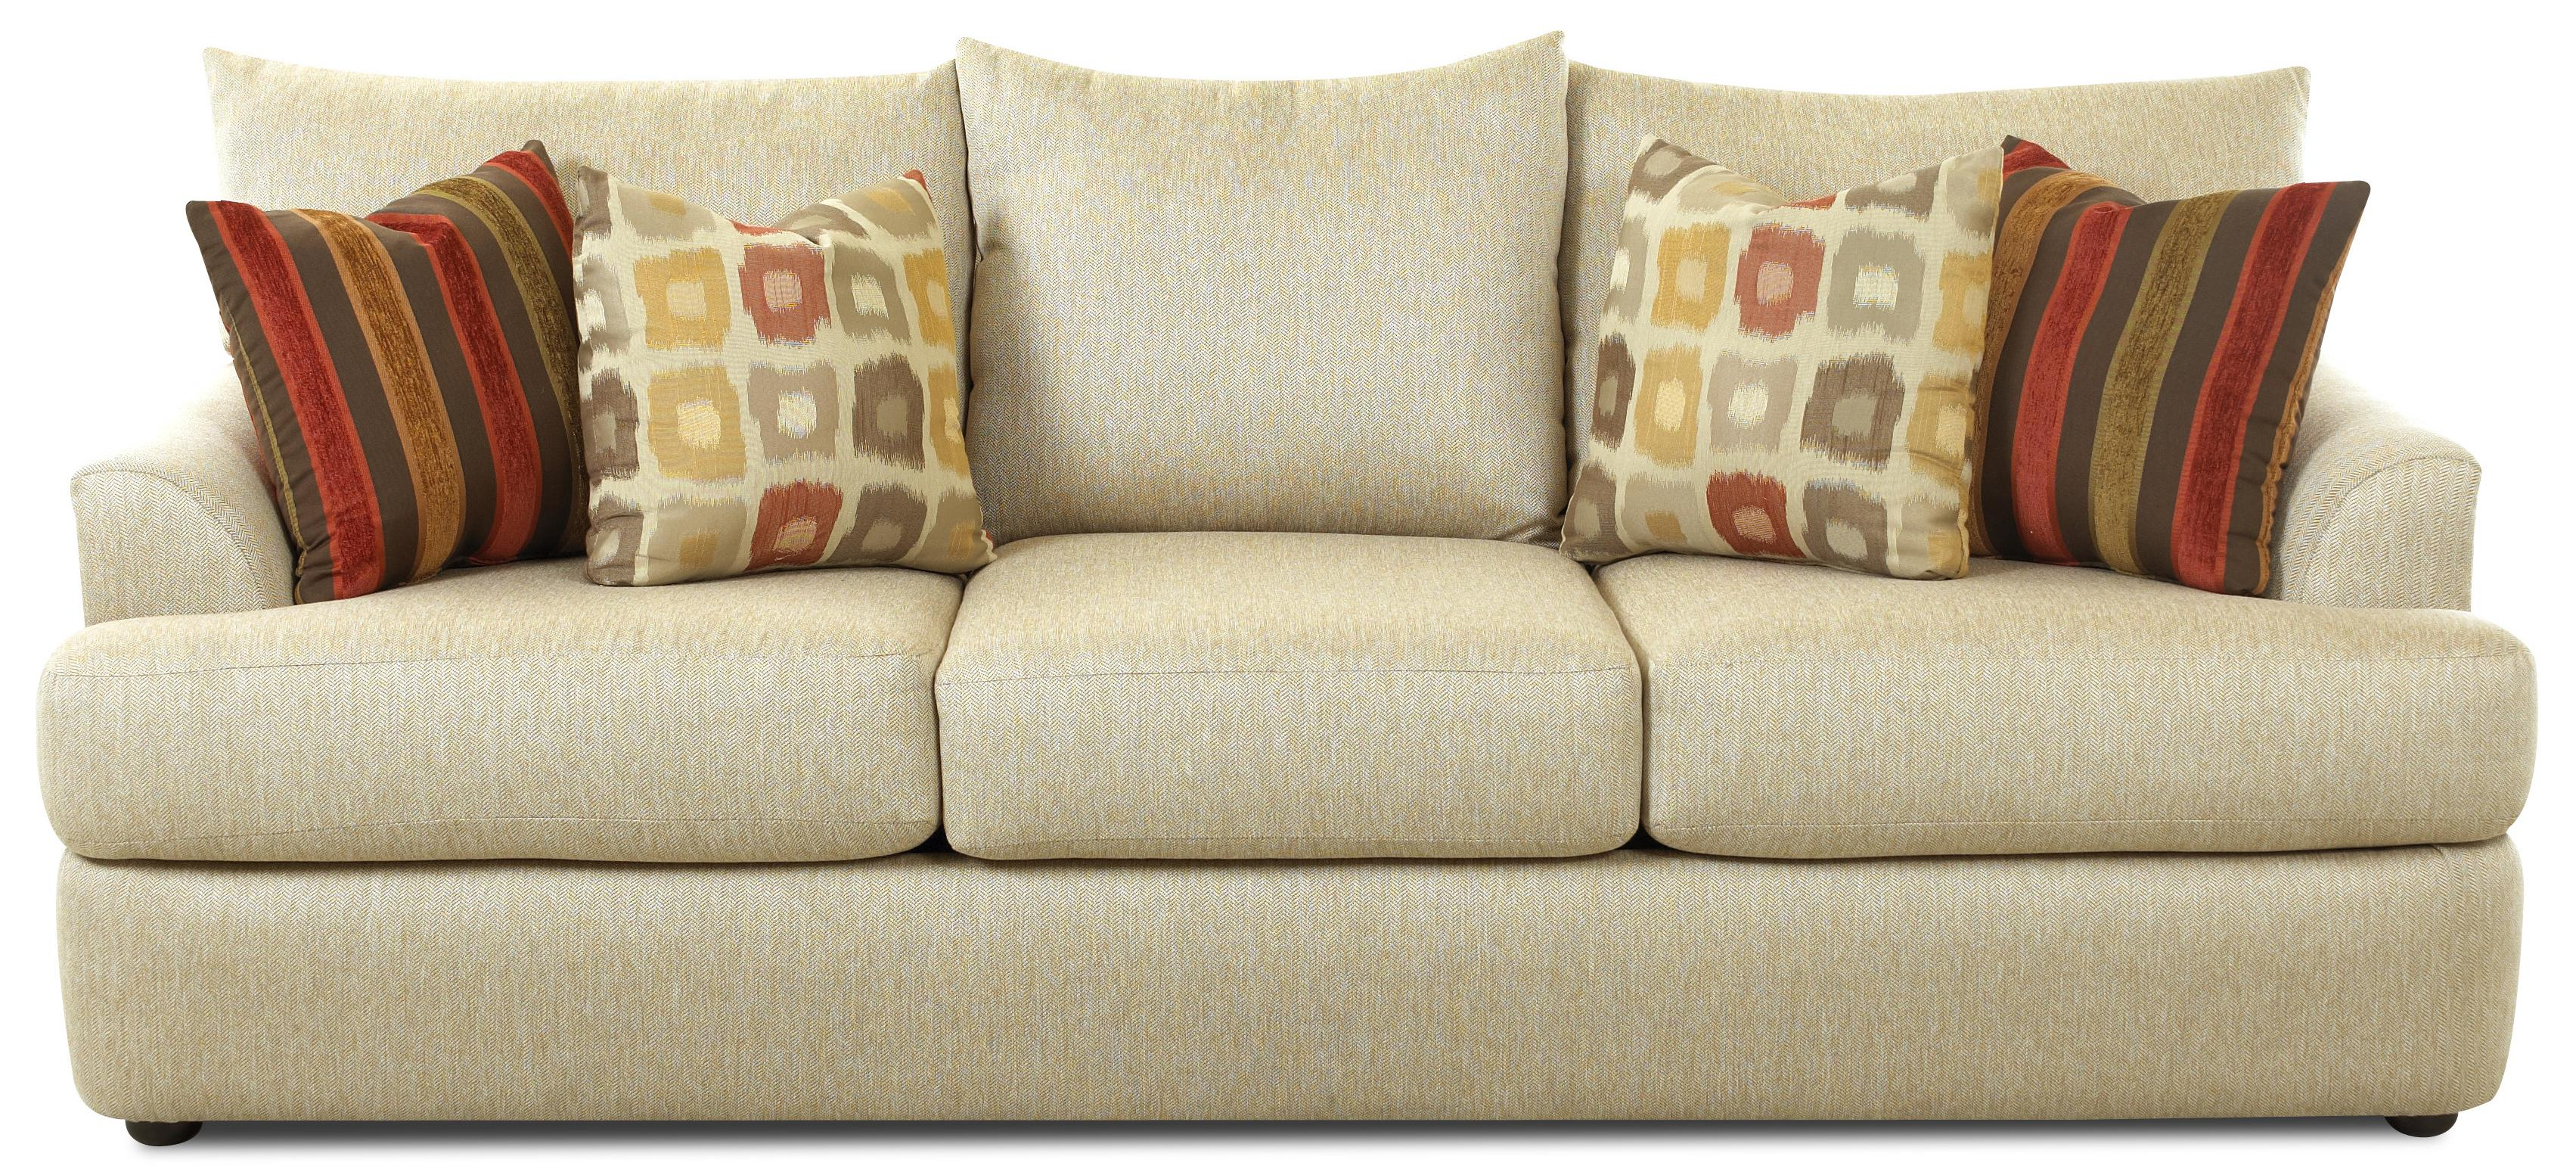 Throw Pillows Sectional : Three Over Three Sofa With Accent Pillows by Klaussner Wolf and Gardiner Wolf Furniture